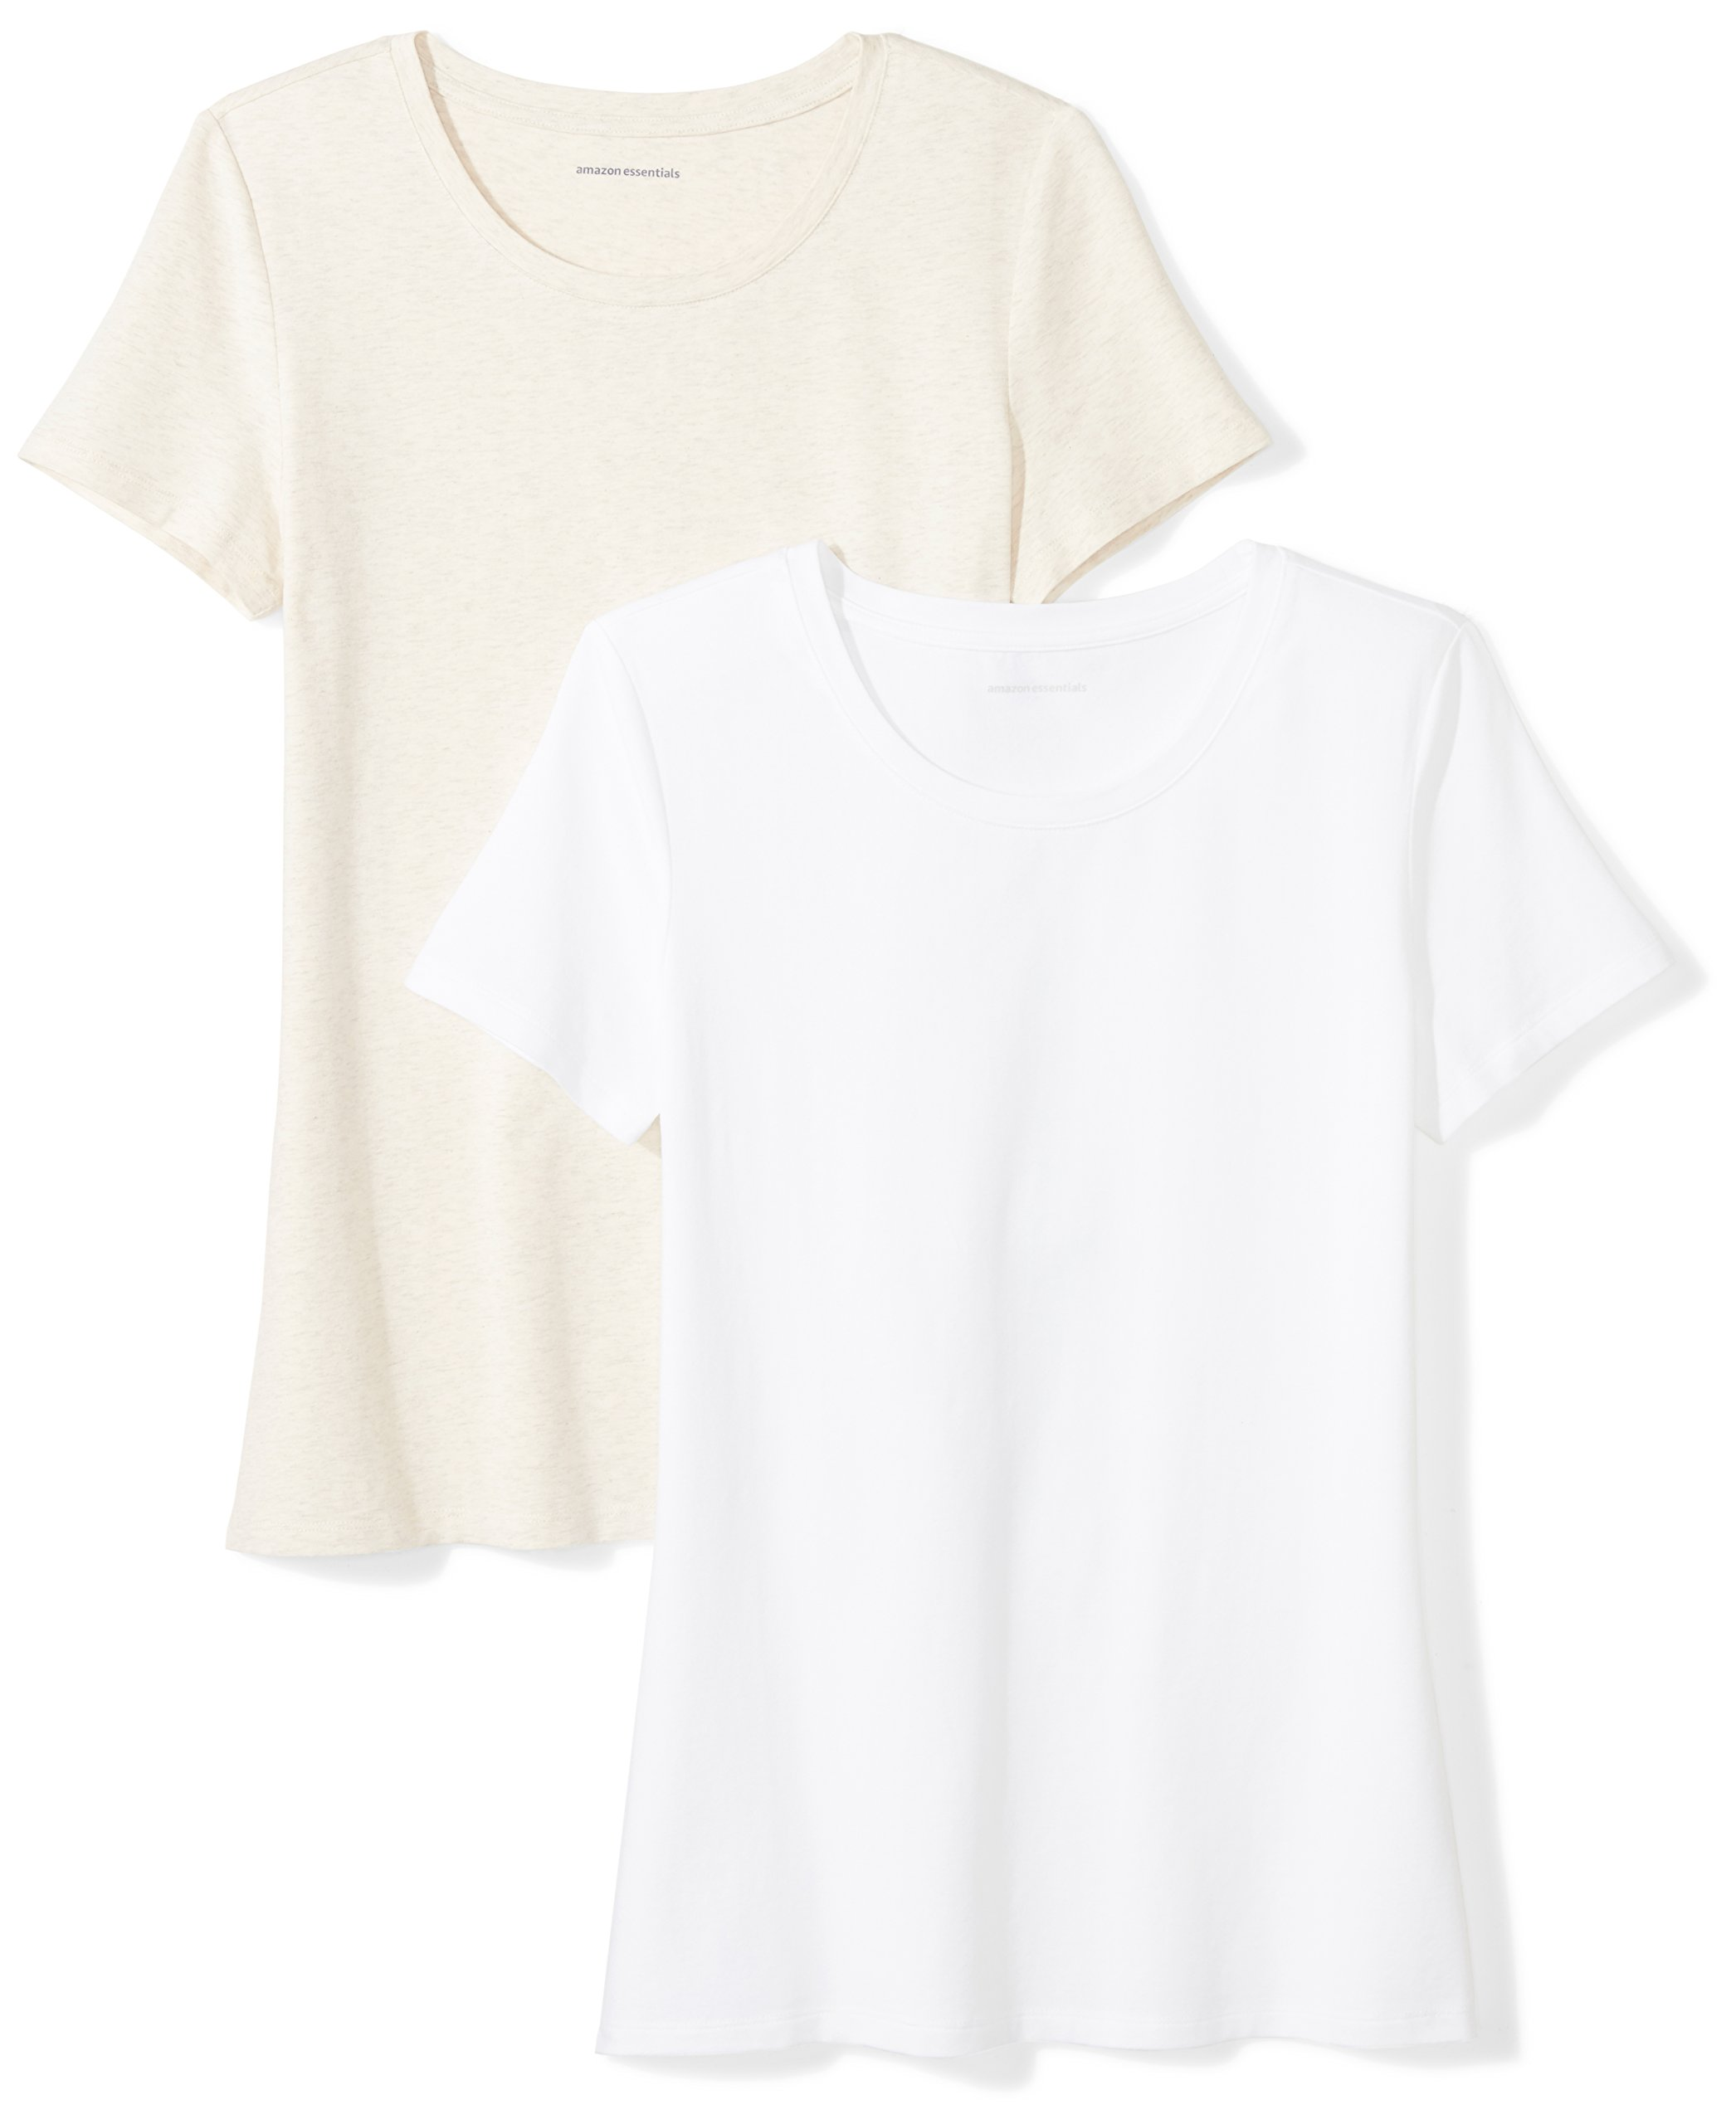 Amazon Essentials Women's 2-Pack Short-Sleeve Crewneck Solid T-Shirt, Oatmeal Heather/White, X-Large